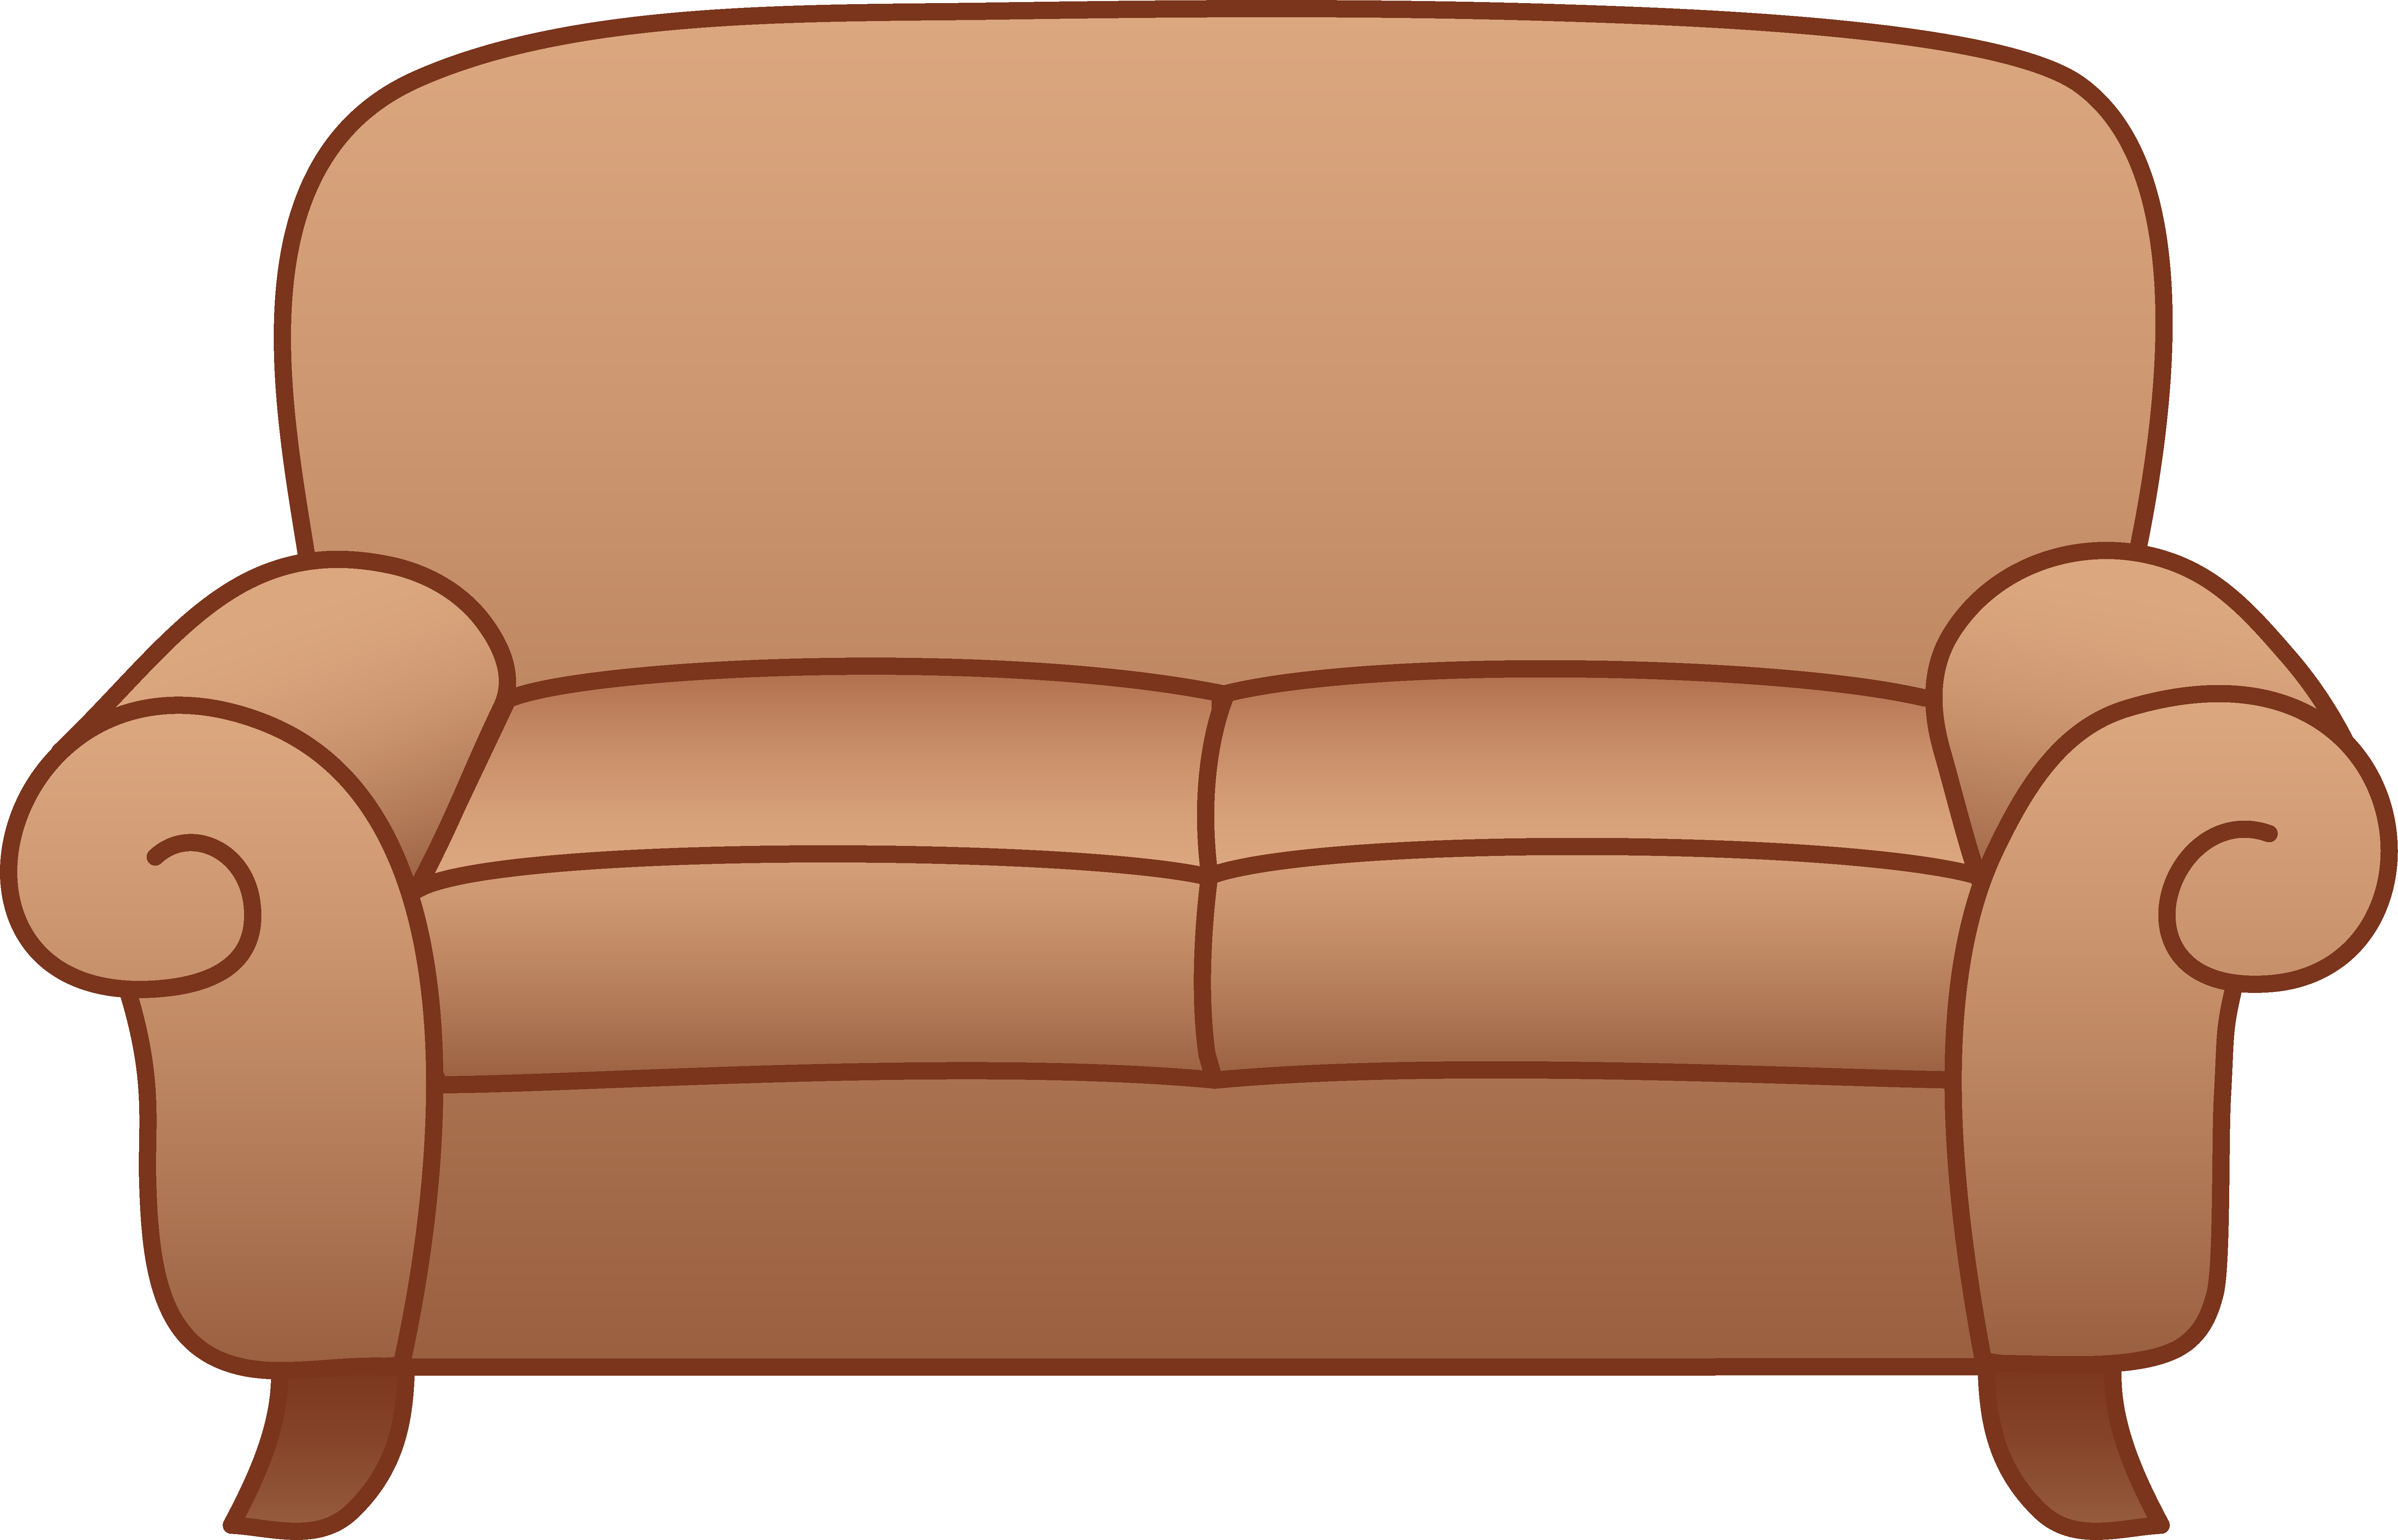 Couch clipart sofa. Txnemgxc png african art